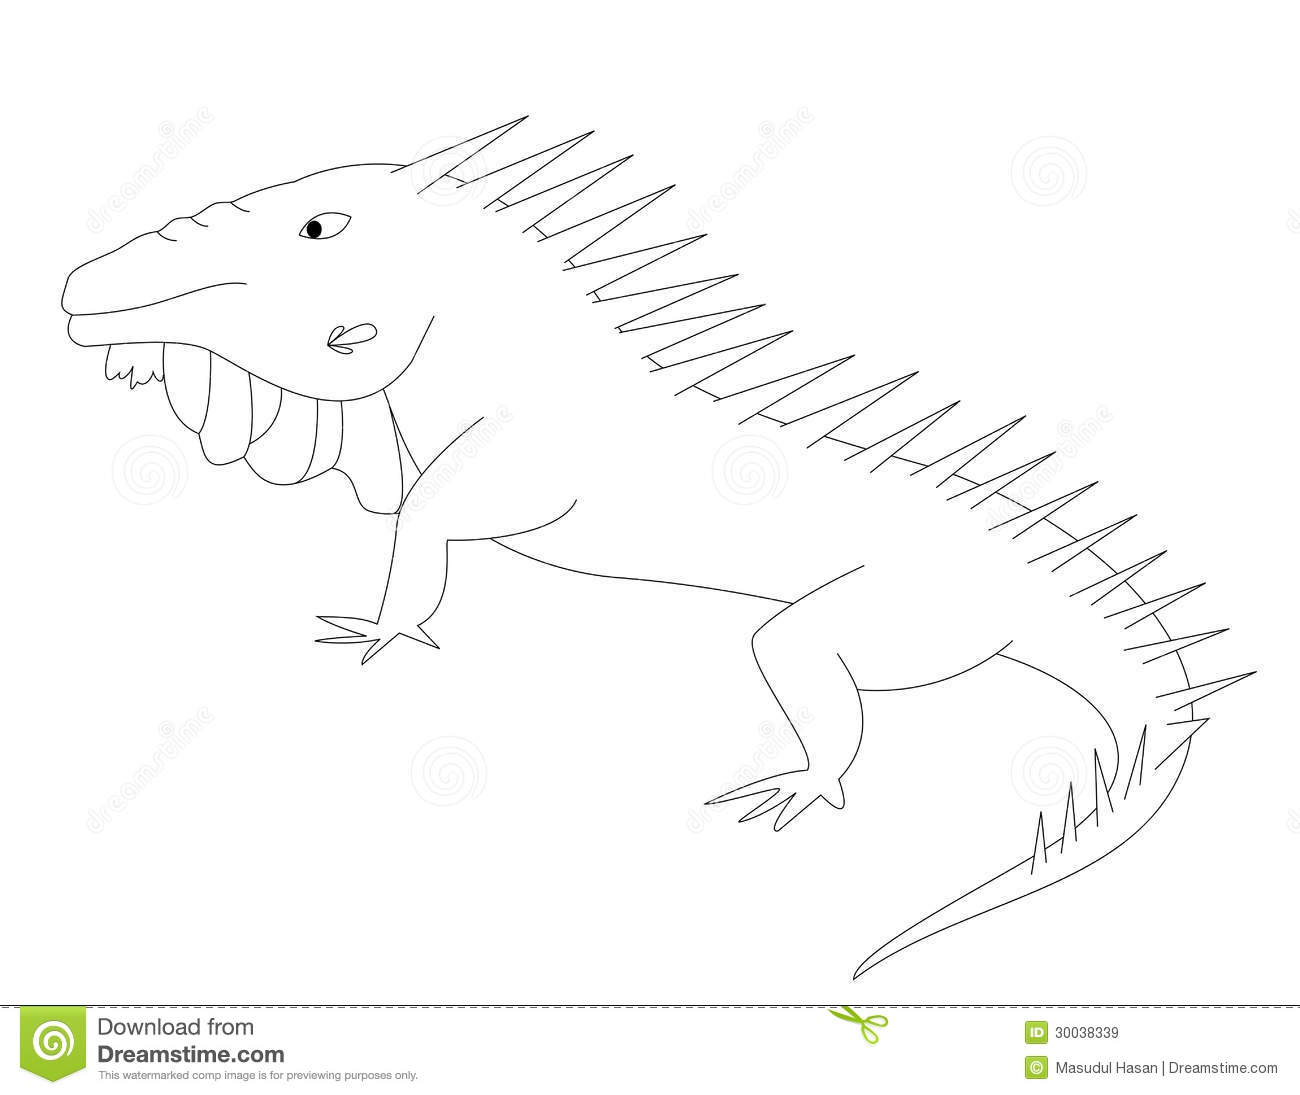 galapagos iguanas coloring pages - photo#19